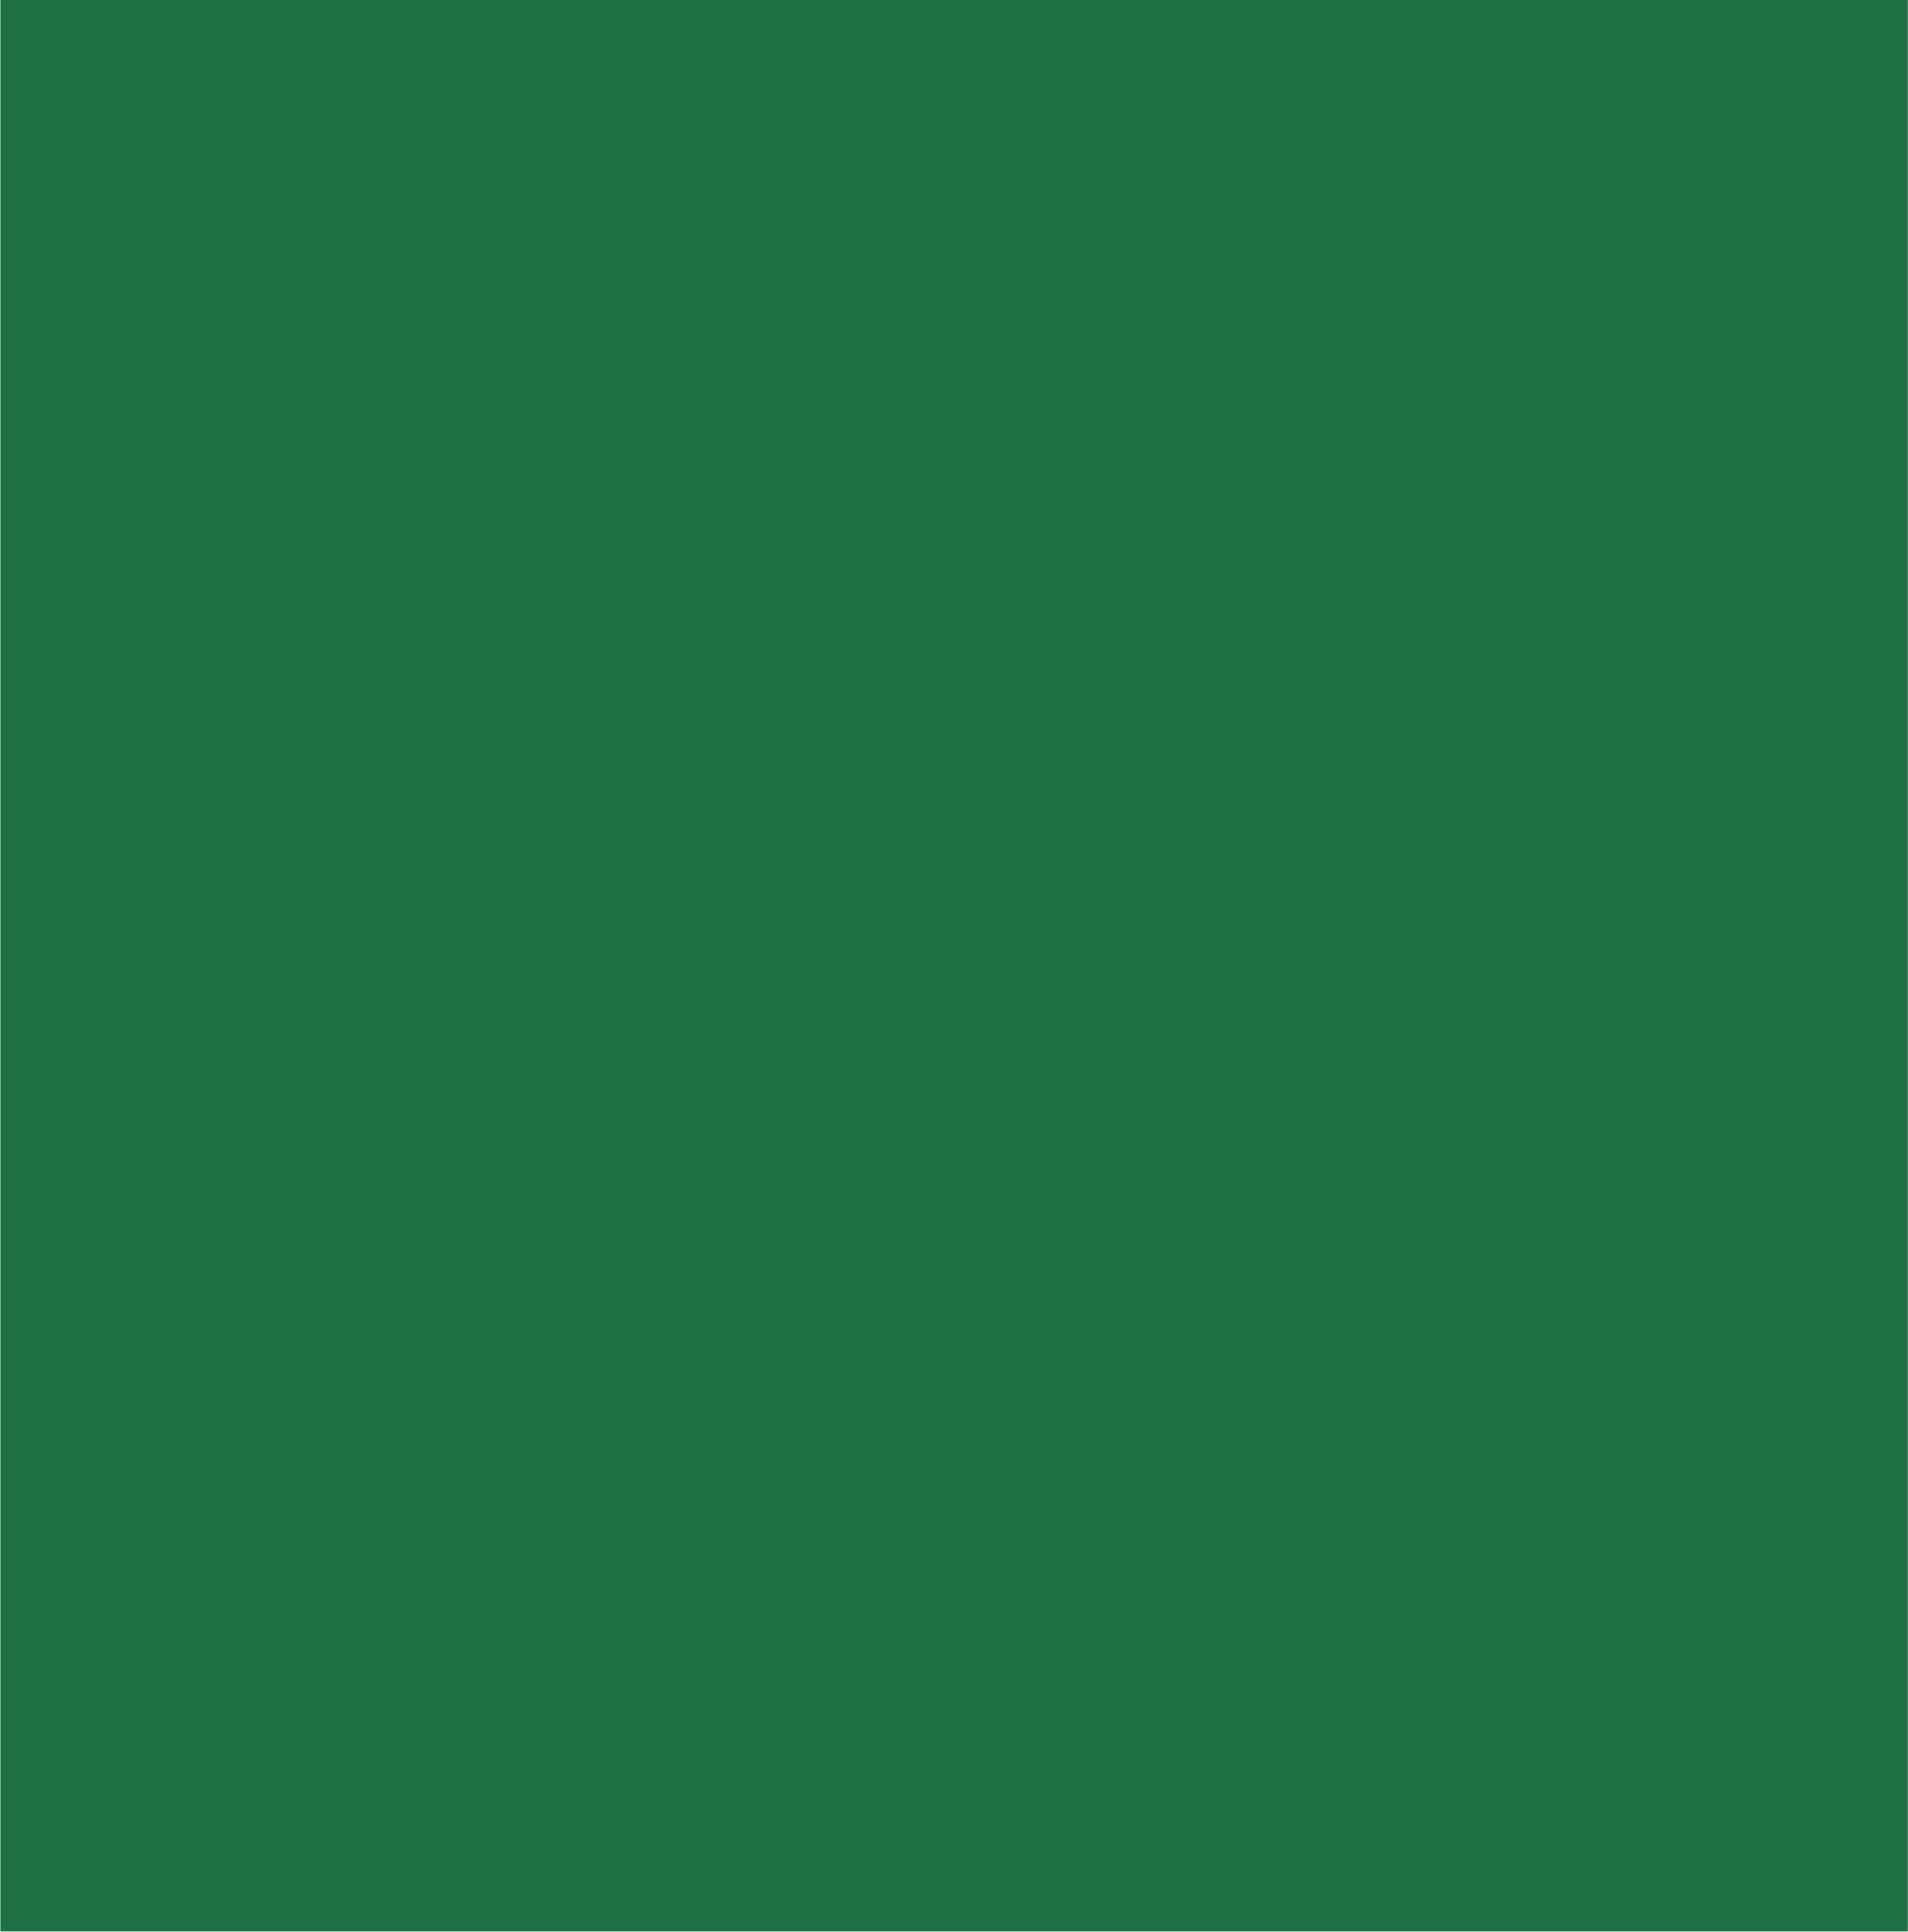 Sample of forest green, one of the accent colors.